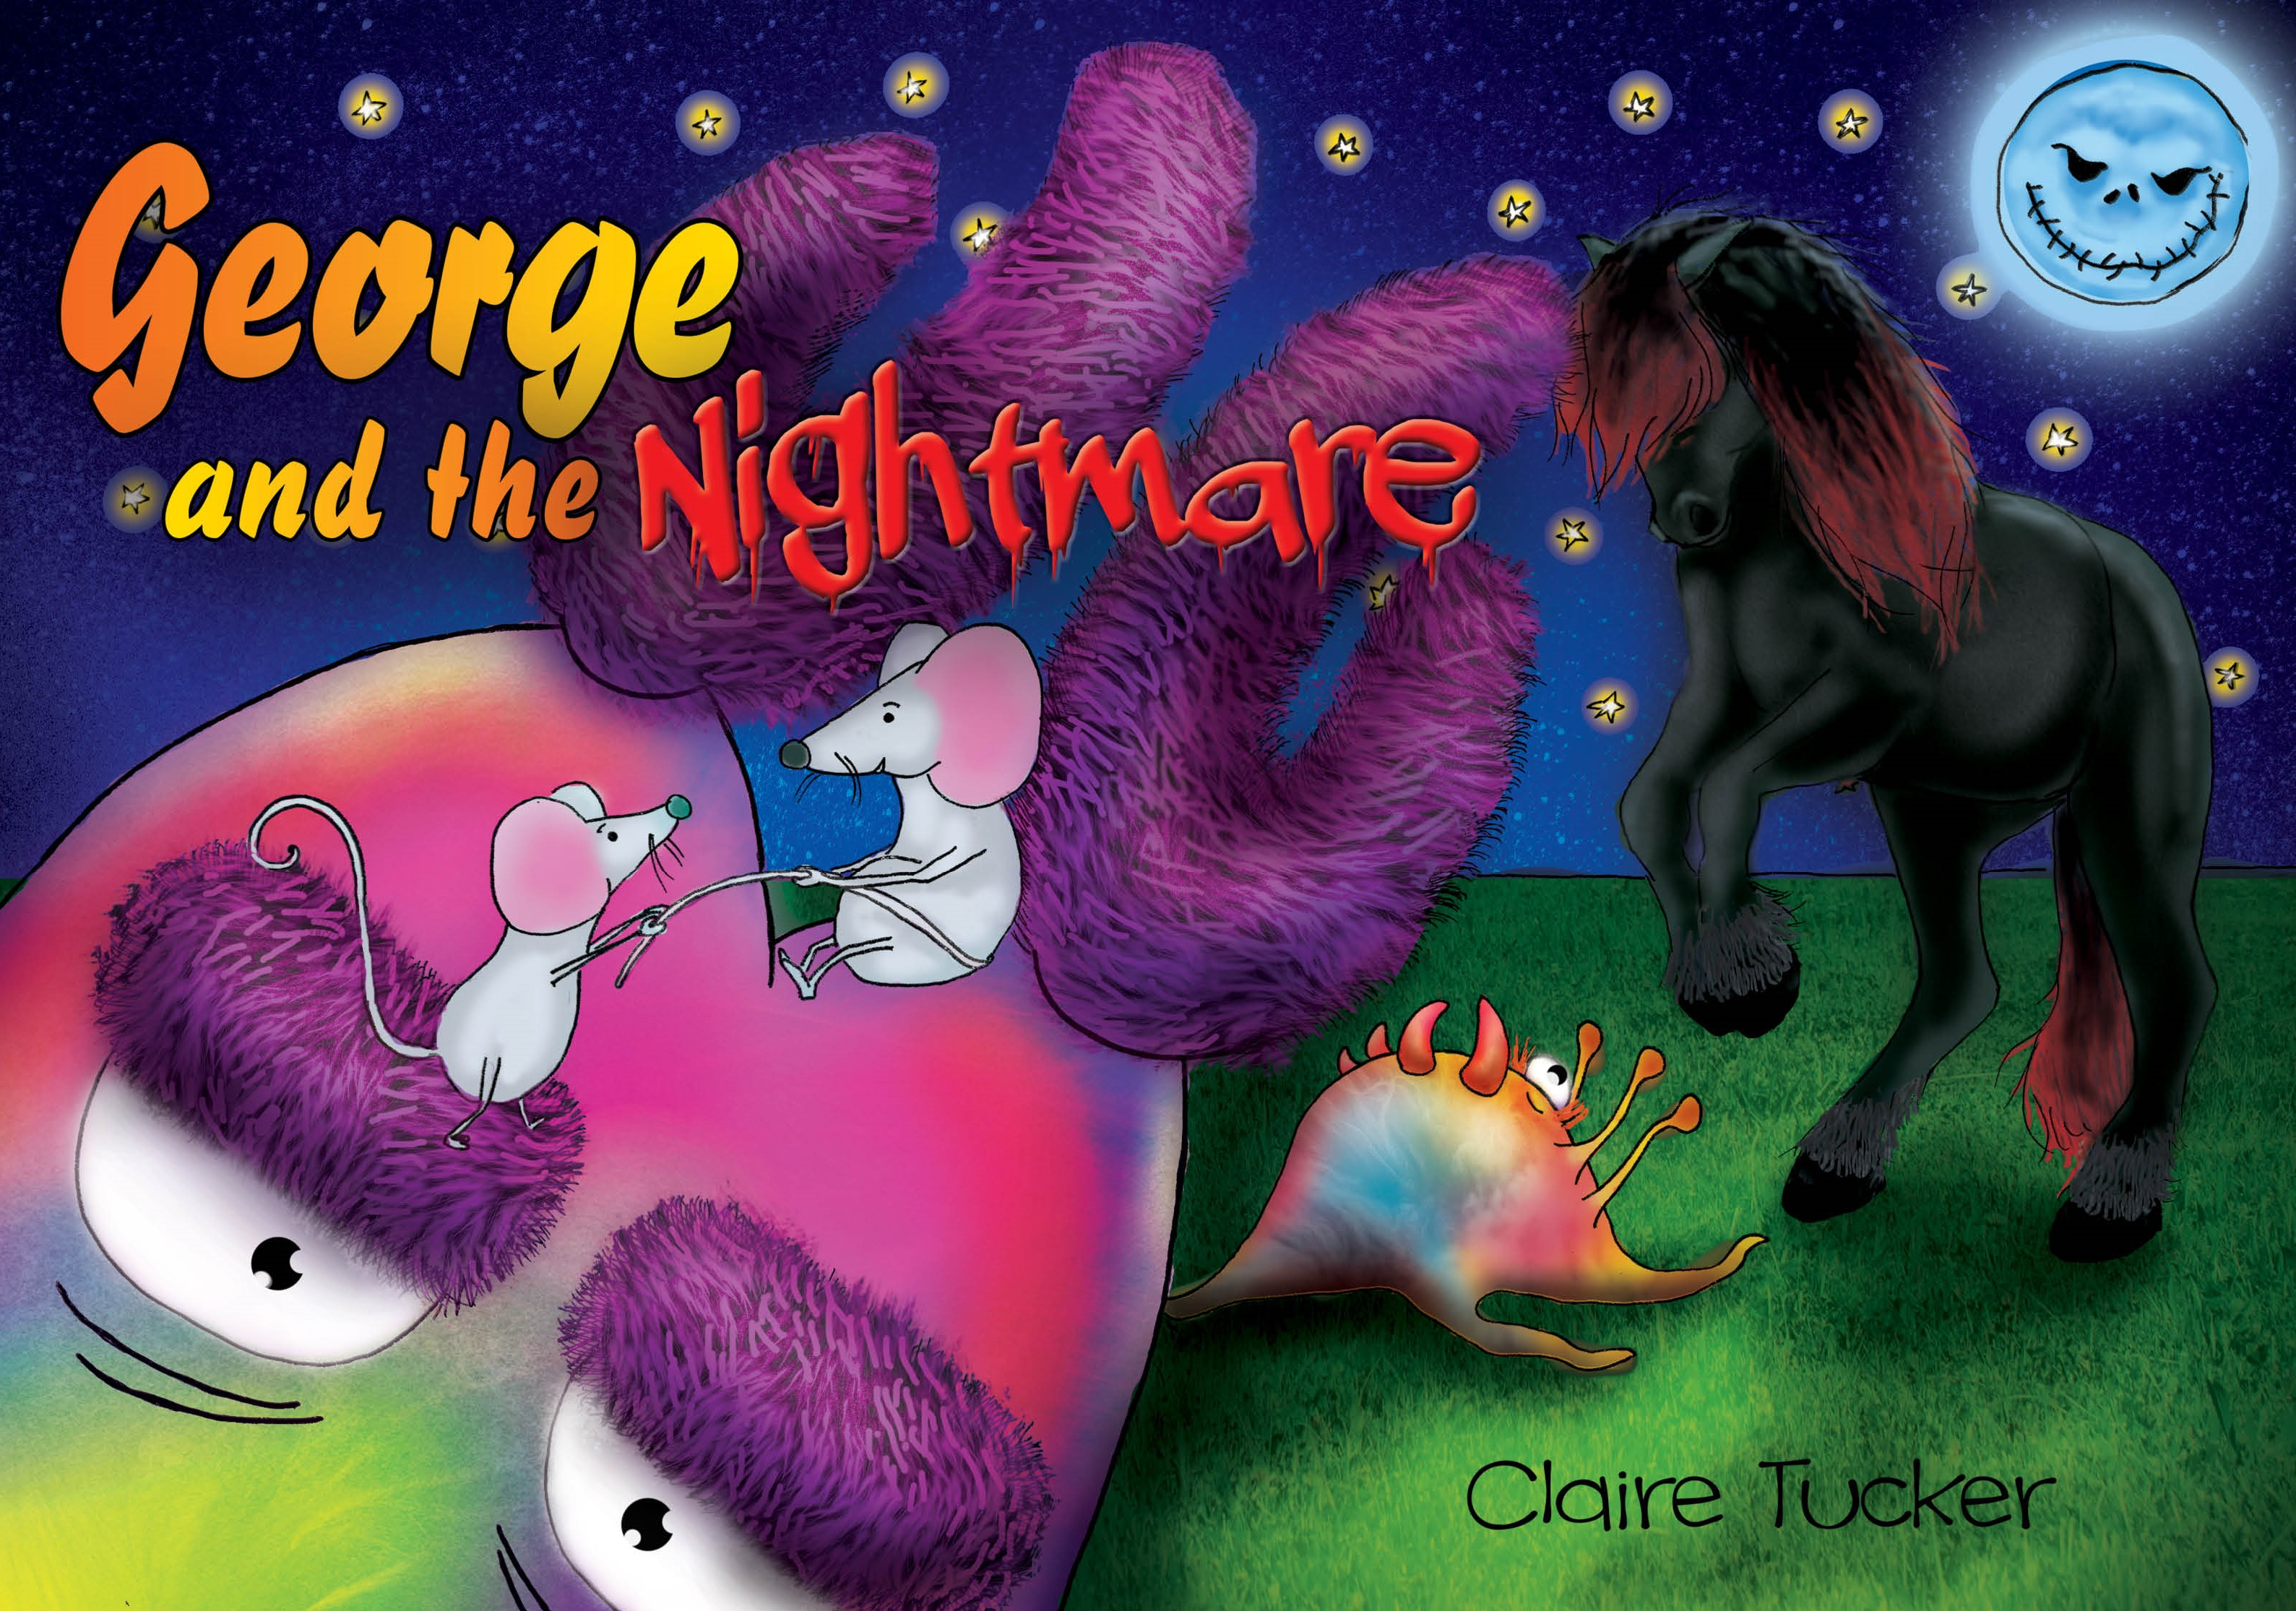 George and the Nightmare